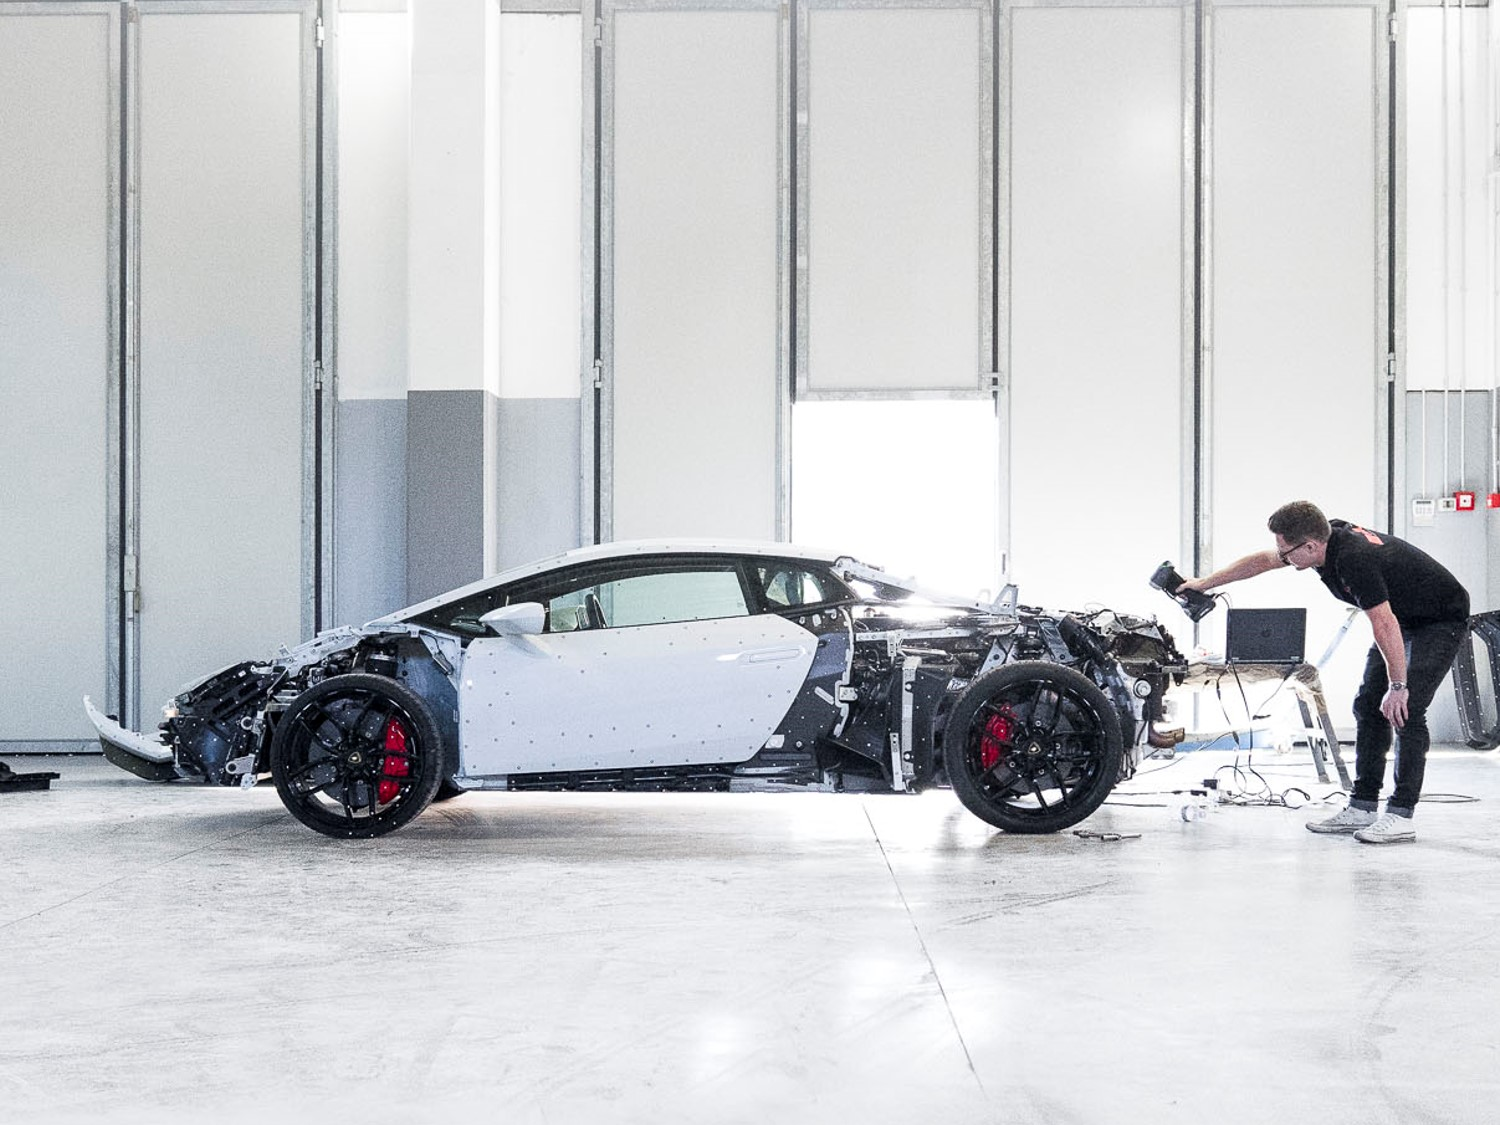 White Lamborghini Huracan in a workshop being scanned by employee with HandySCAN 3D scanner next to laptop